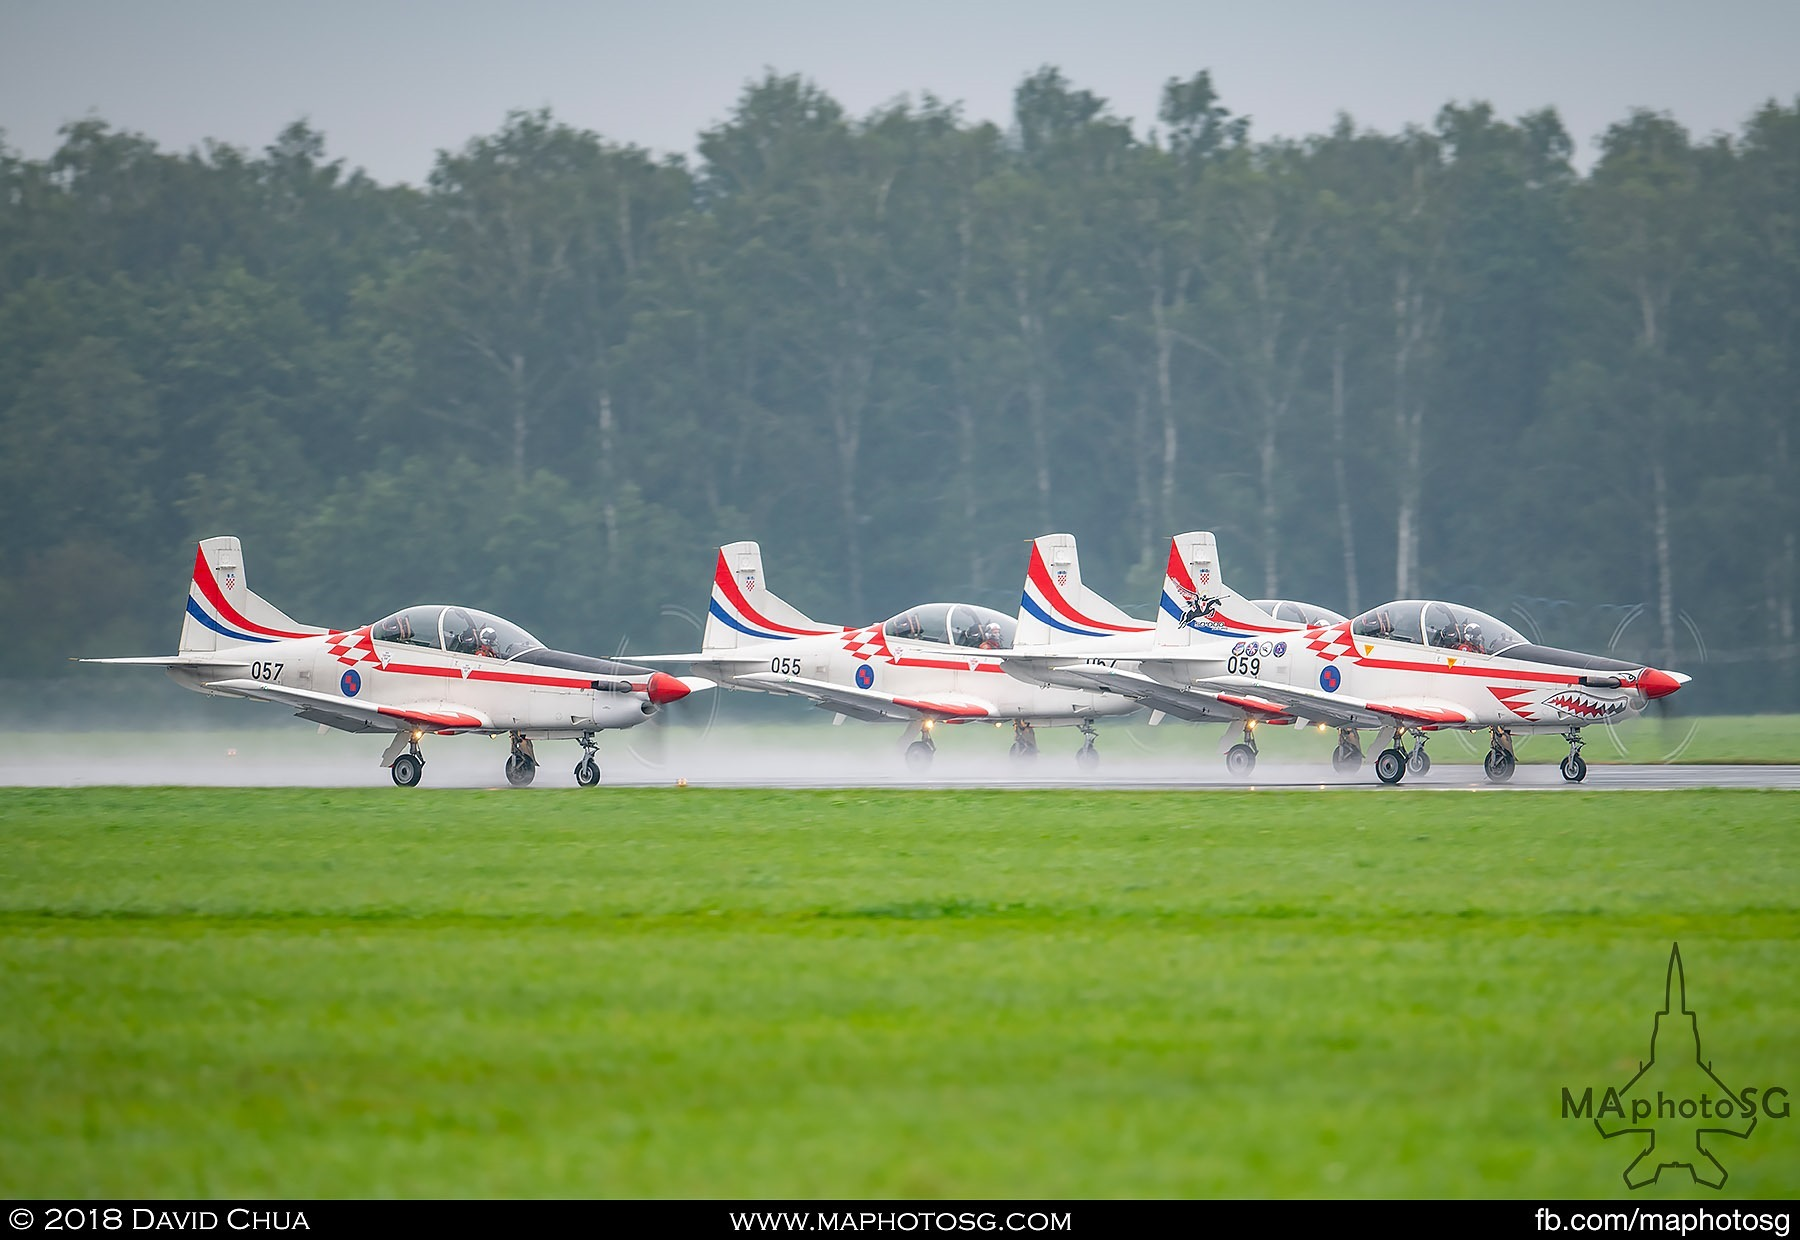 23. Pilatus PC-9Ms of the Croatian Air Force Krila Oluje takes off for their performance